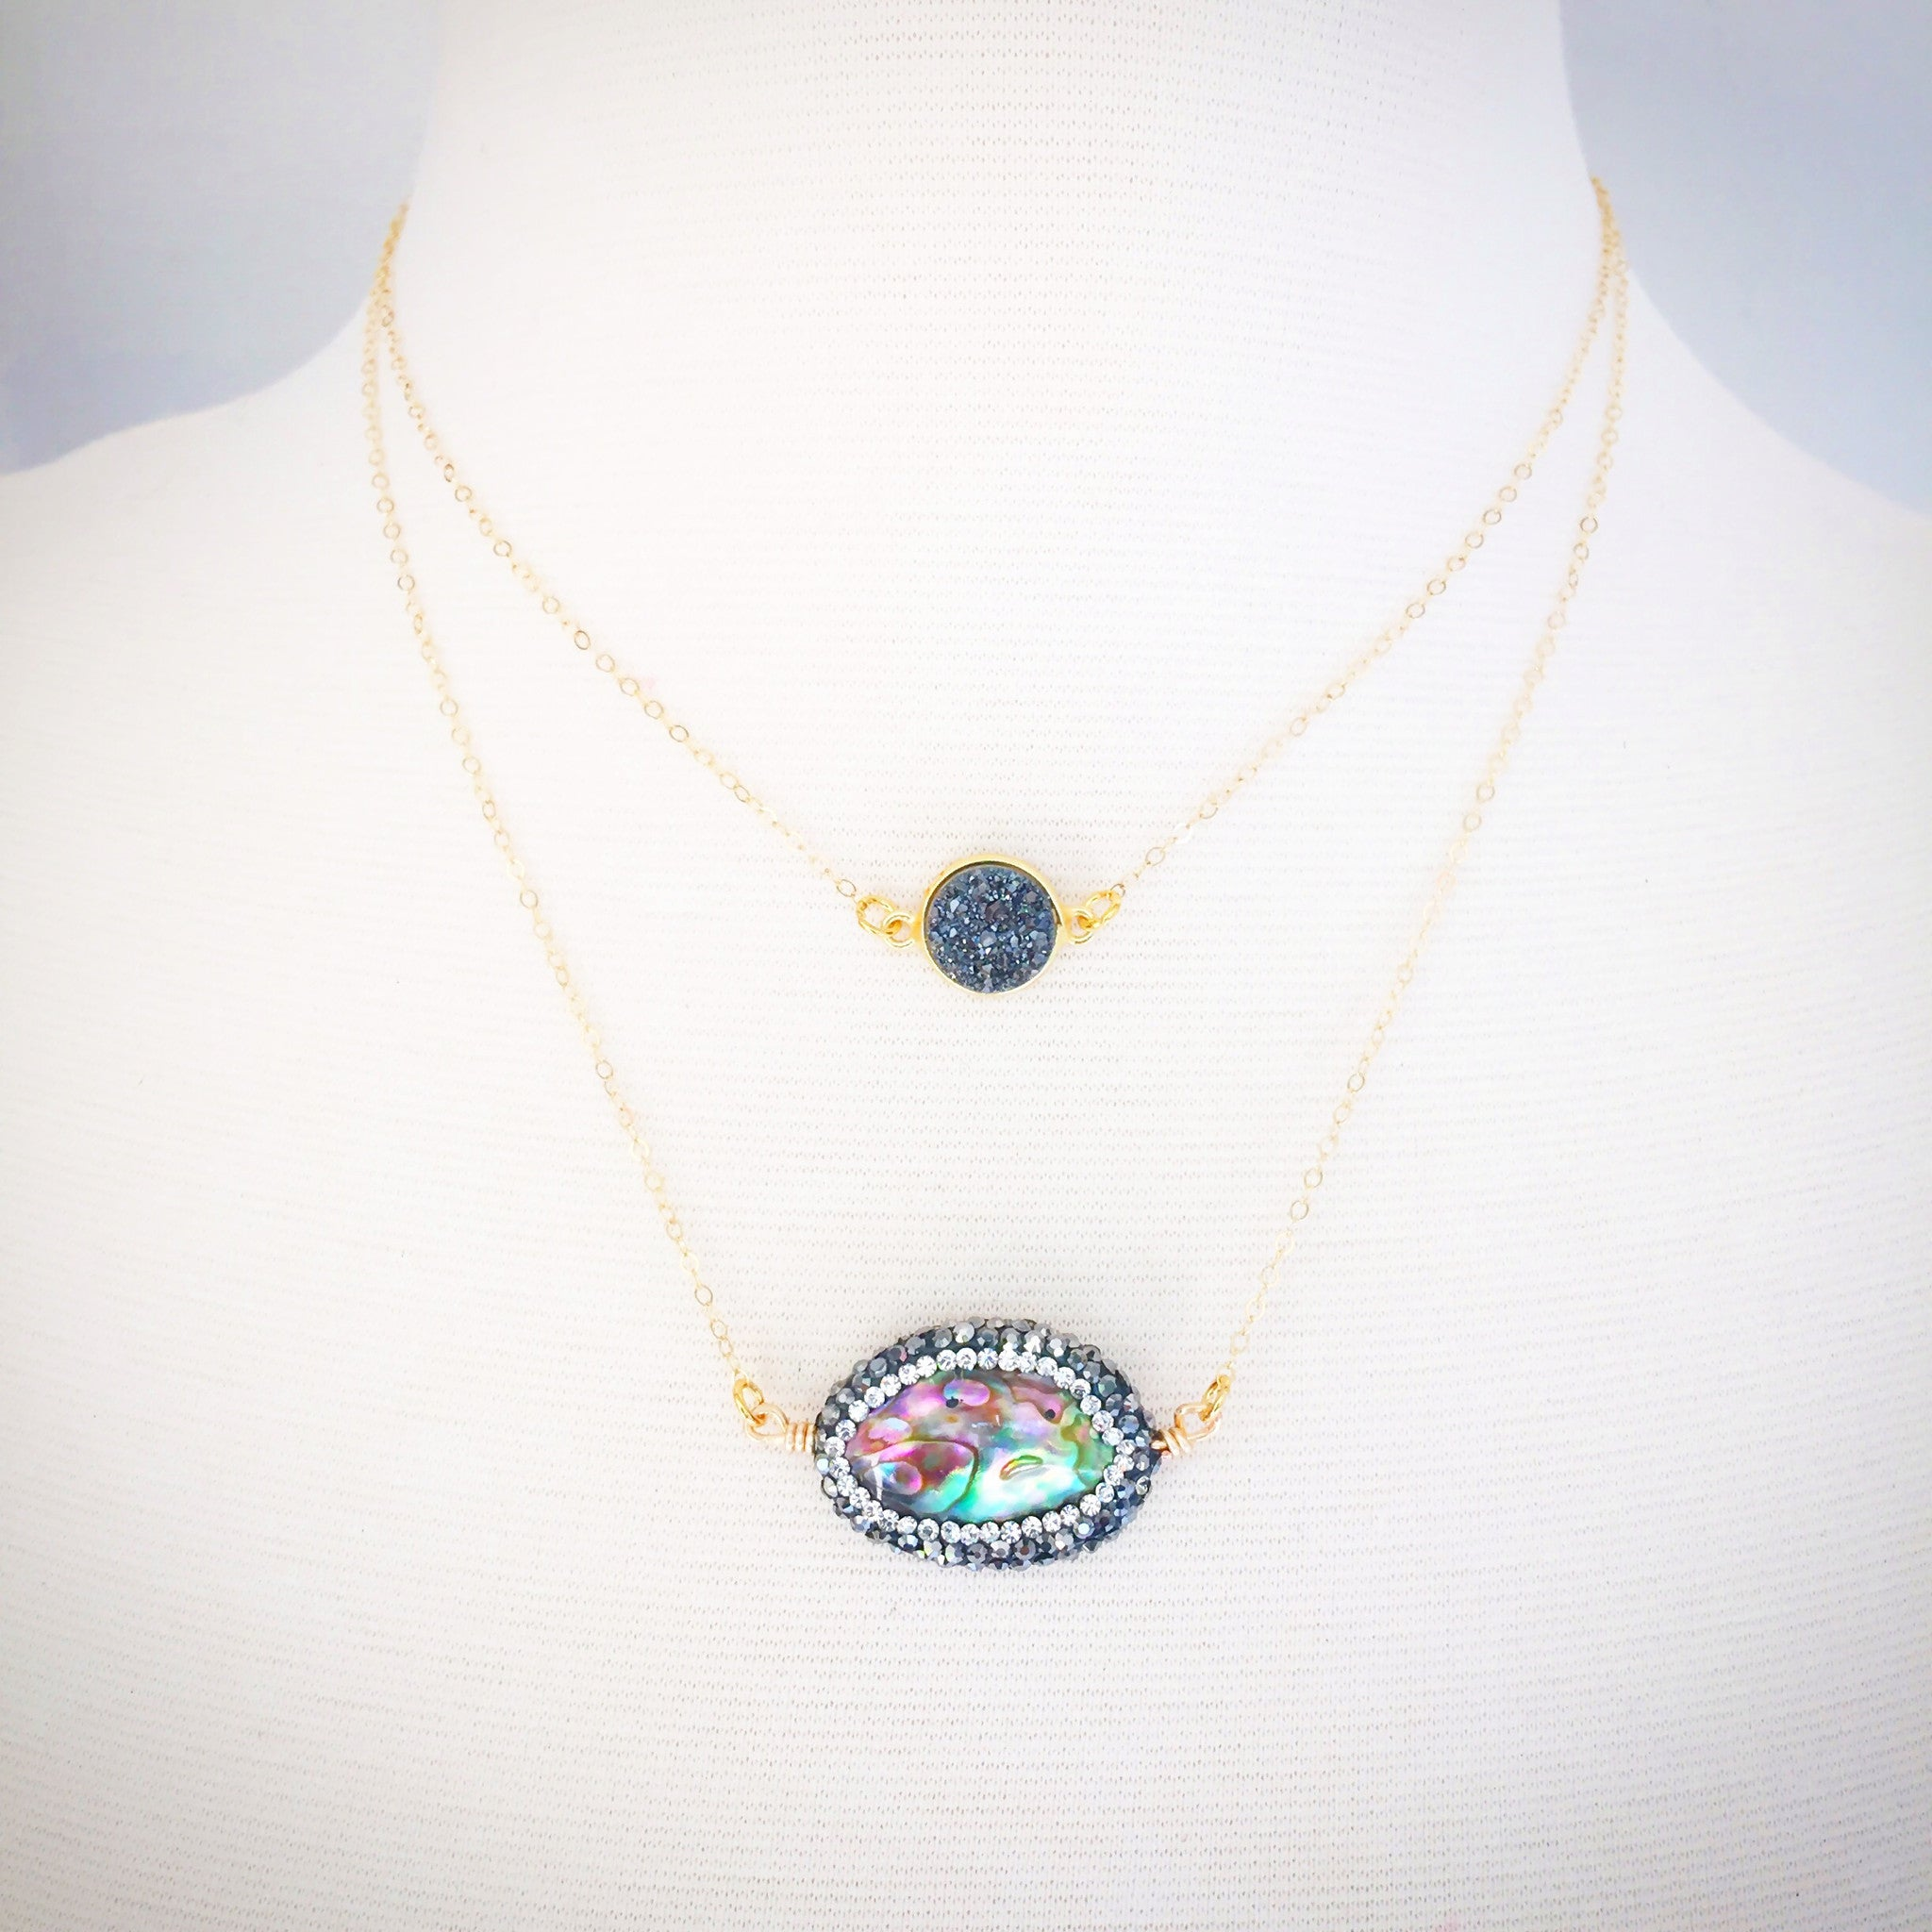 Dainty Pave' Abalone Necklace